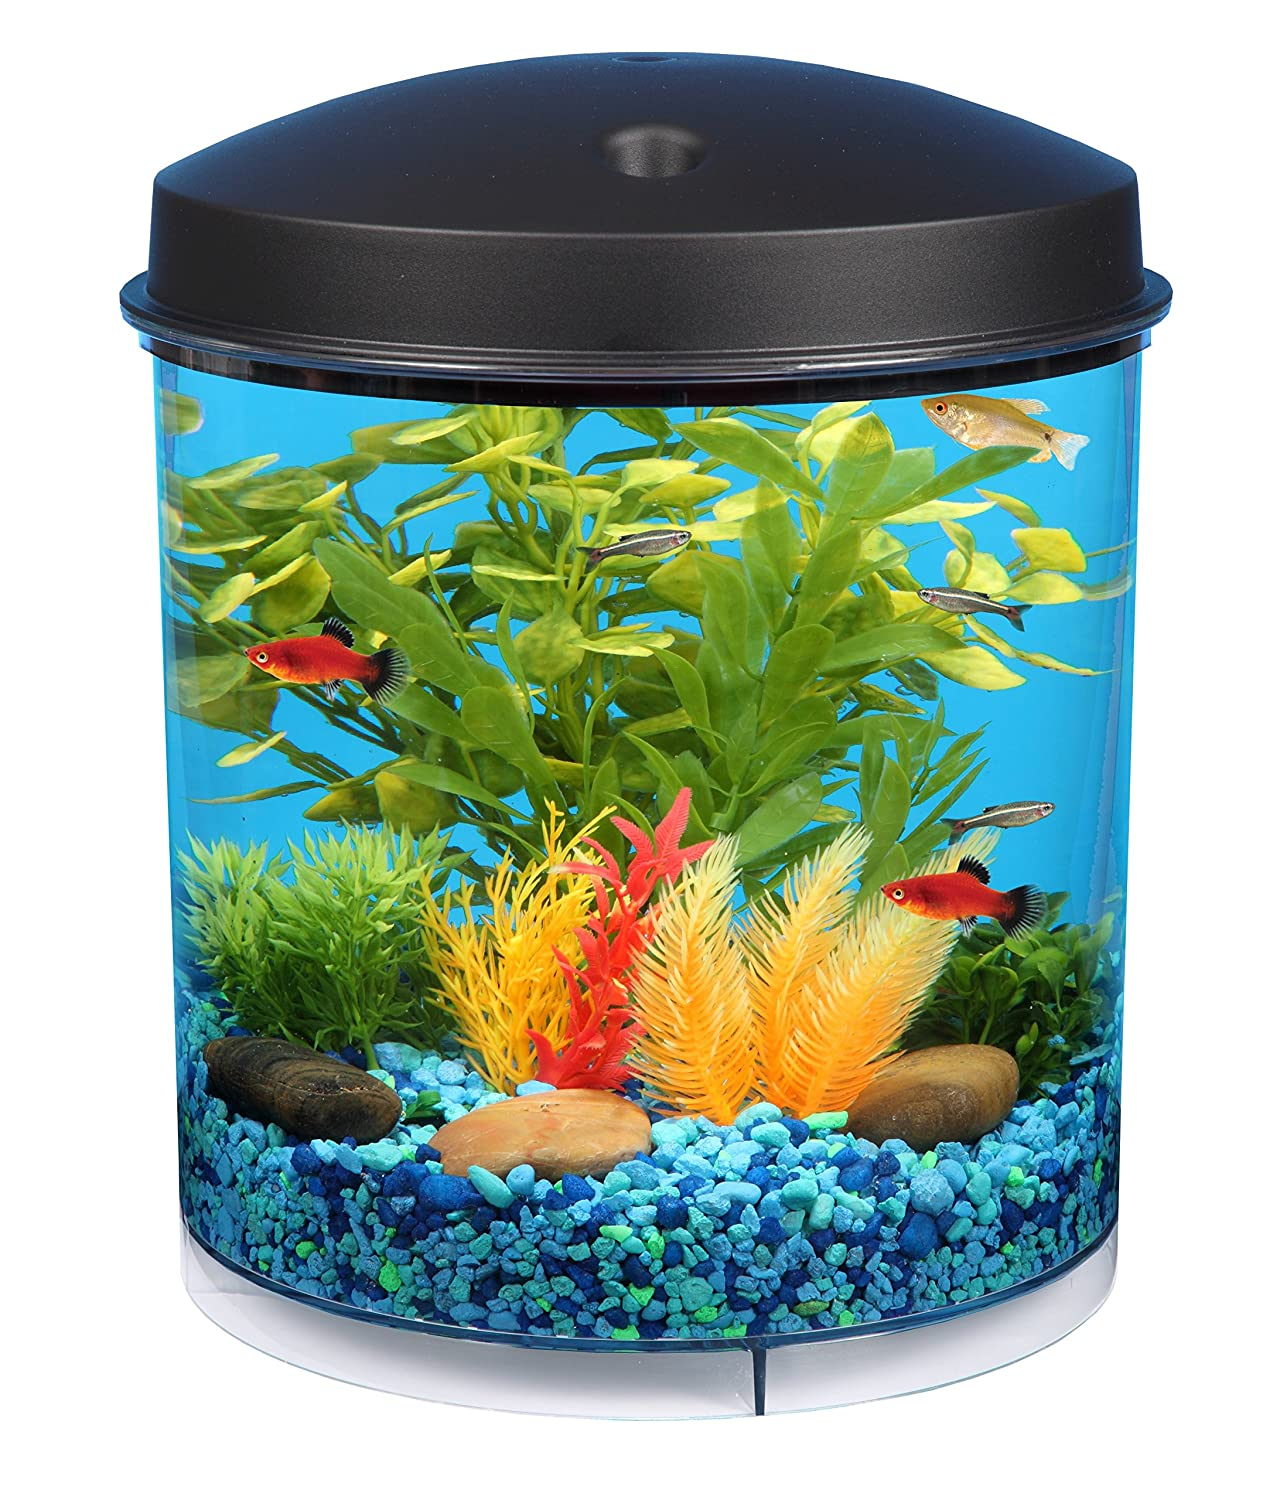 Fish tank electricity cost - Aquaview 360 2 Gallon Aquarium With Led Lighting And